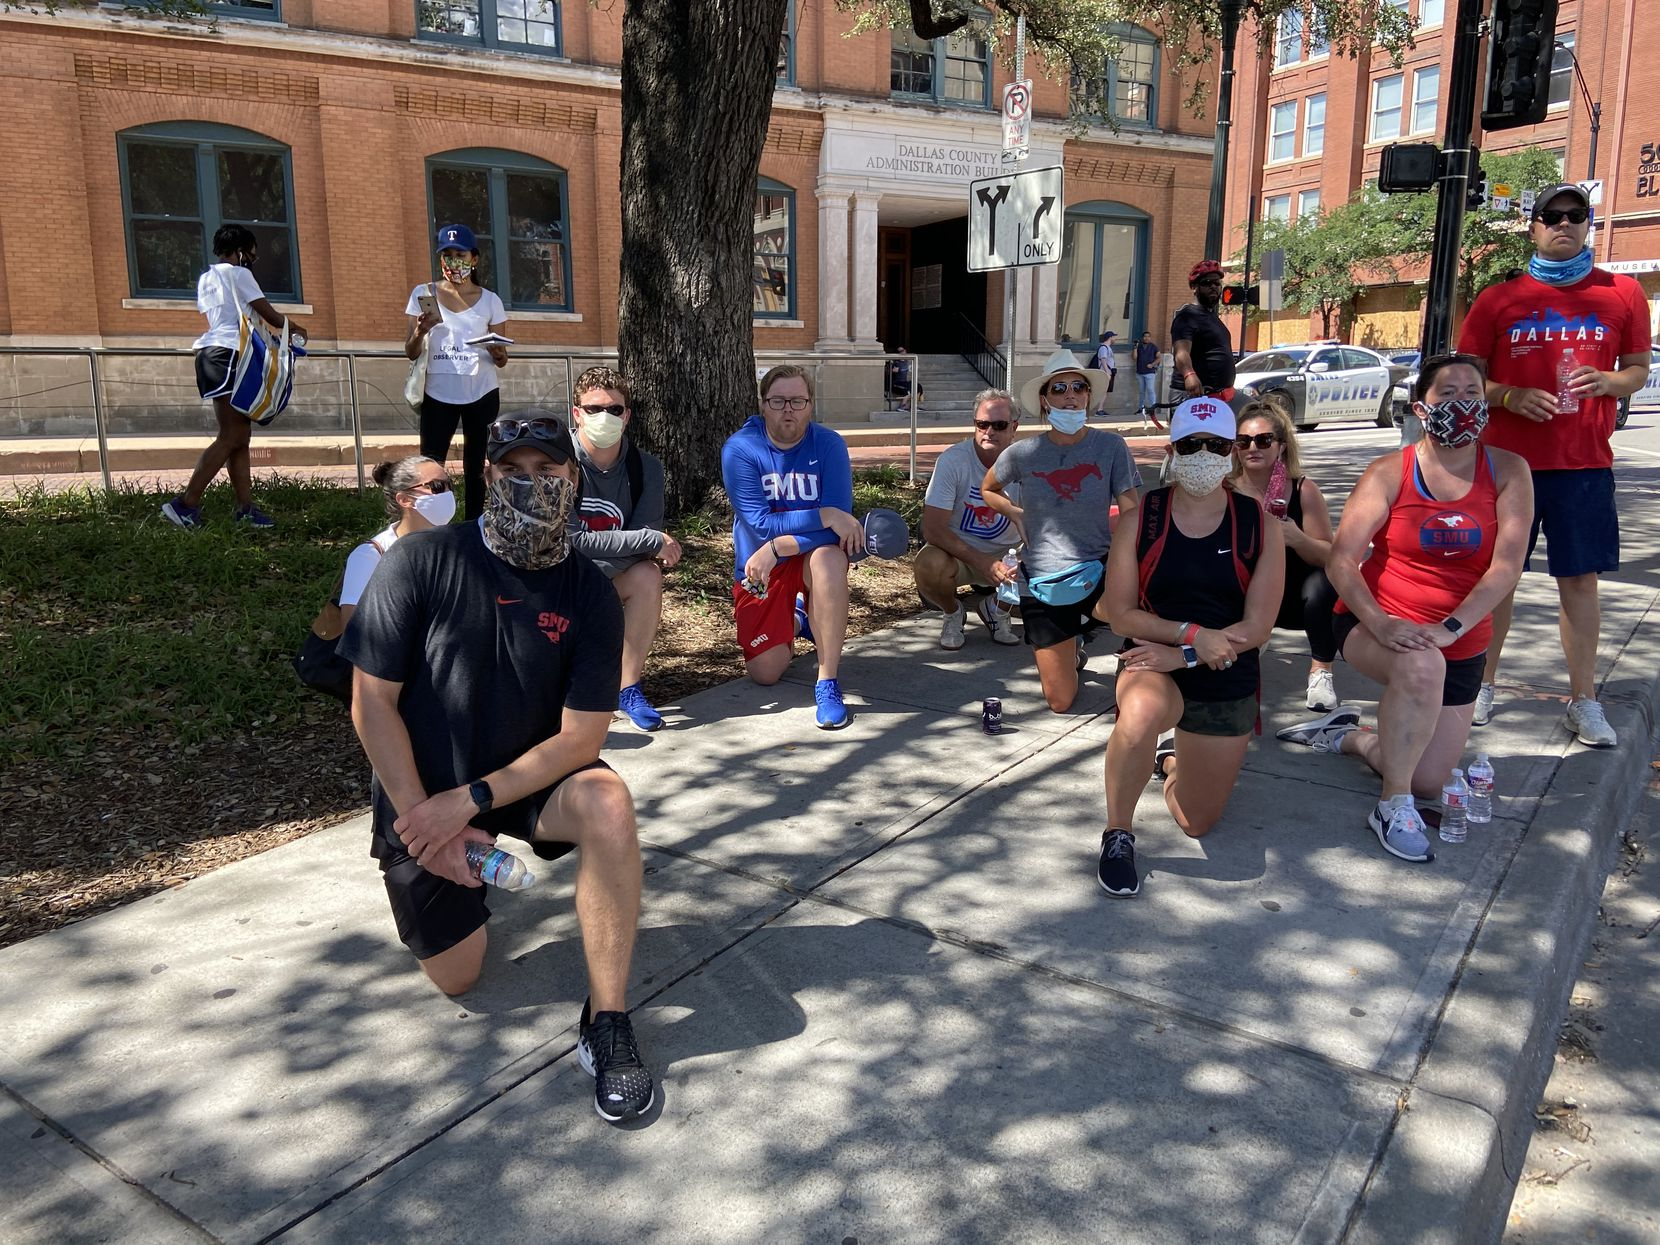 SMU staff members kneel in support of protesters near Dealey Plaza on June 5, 2020. (By Sam Blum.)